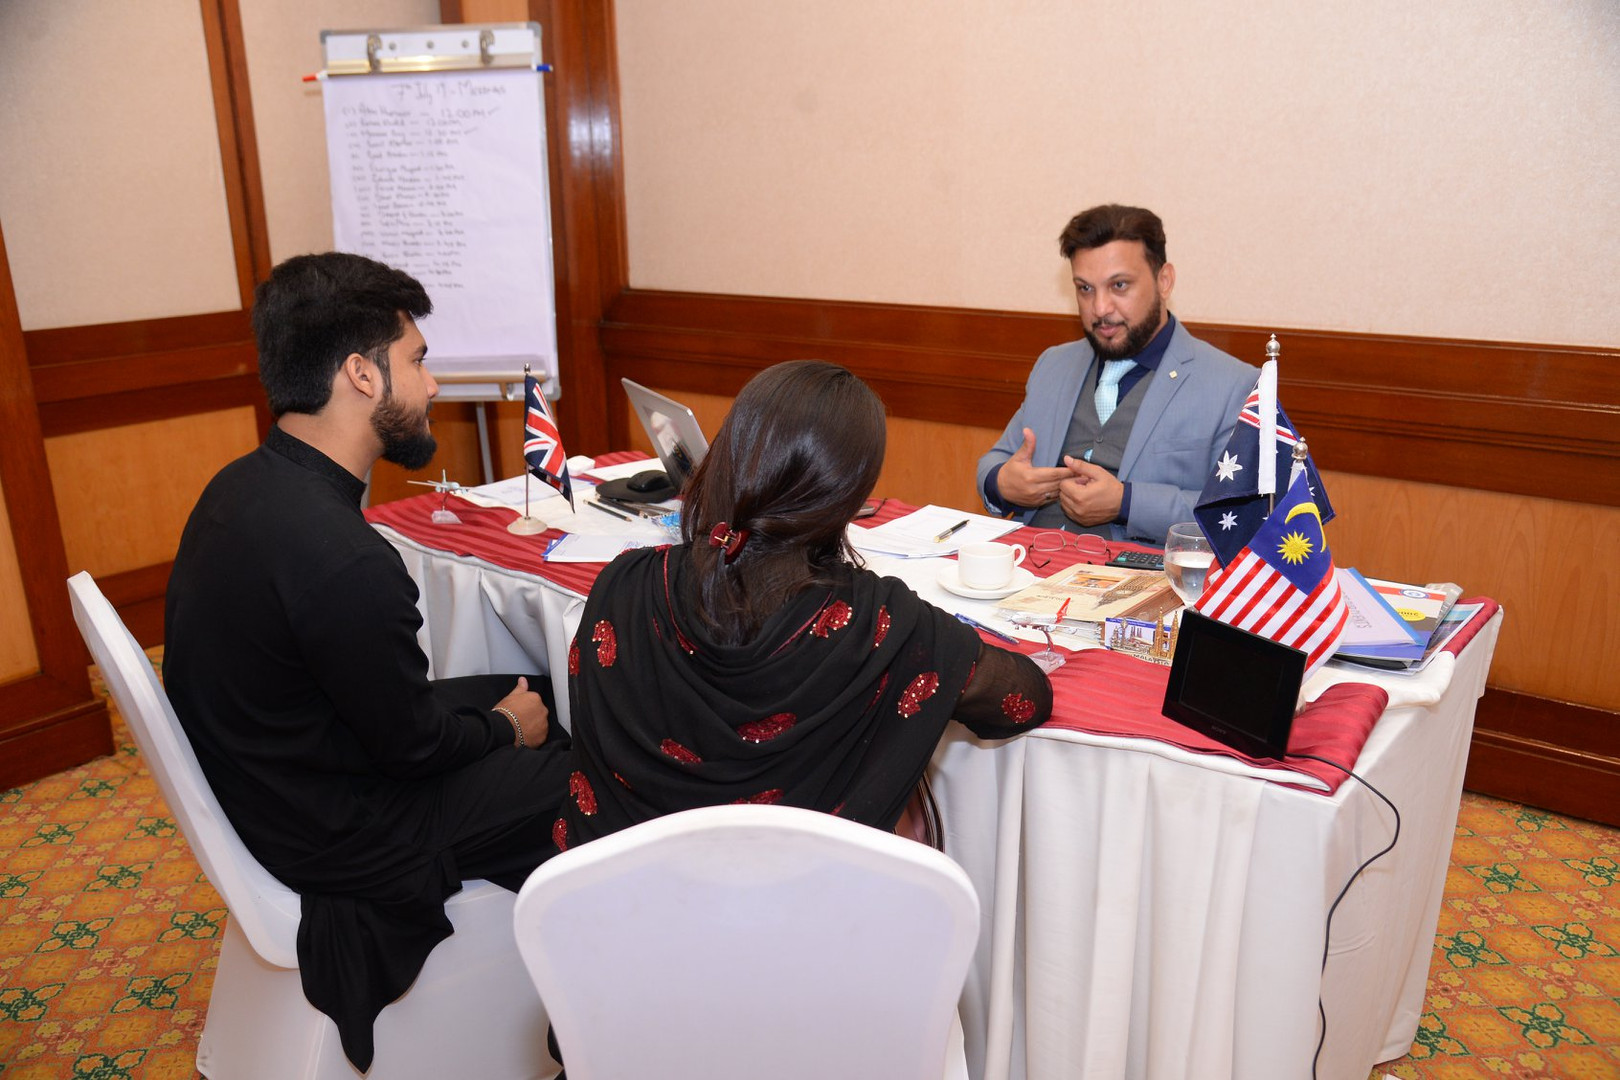 ADIL ISMAIL BEST CANADIAN IMMIGRATION CONSULTANT IN KARACHI PAKISTAN ADIL ISMAIL SUPERIOR CONSULTING